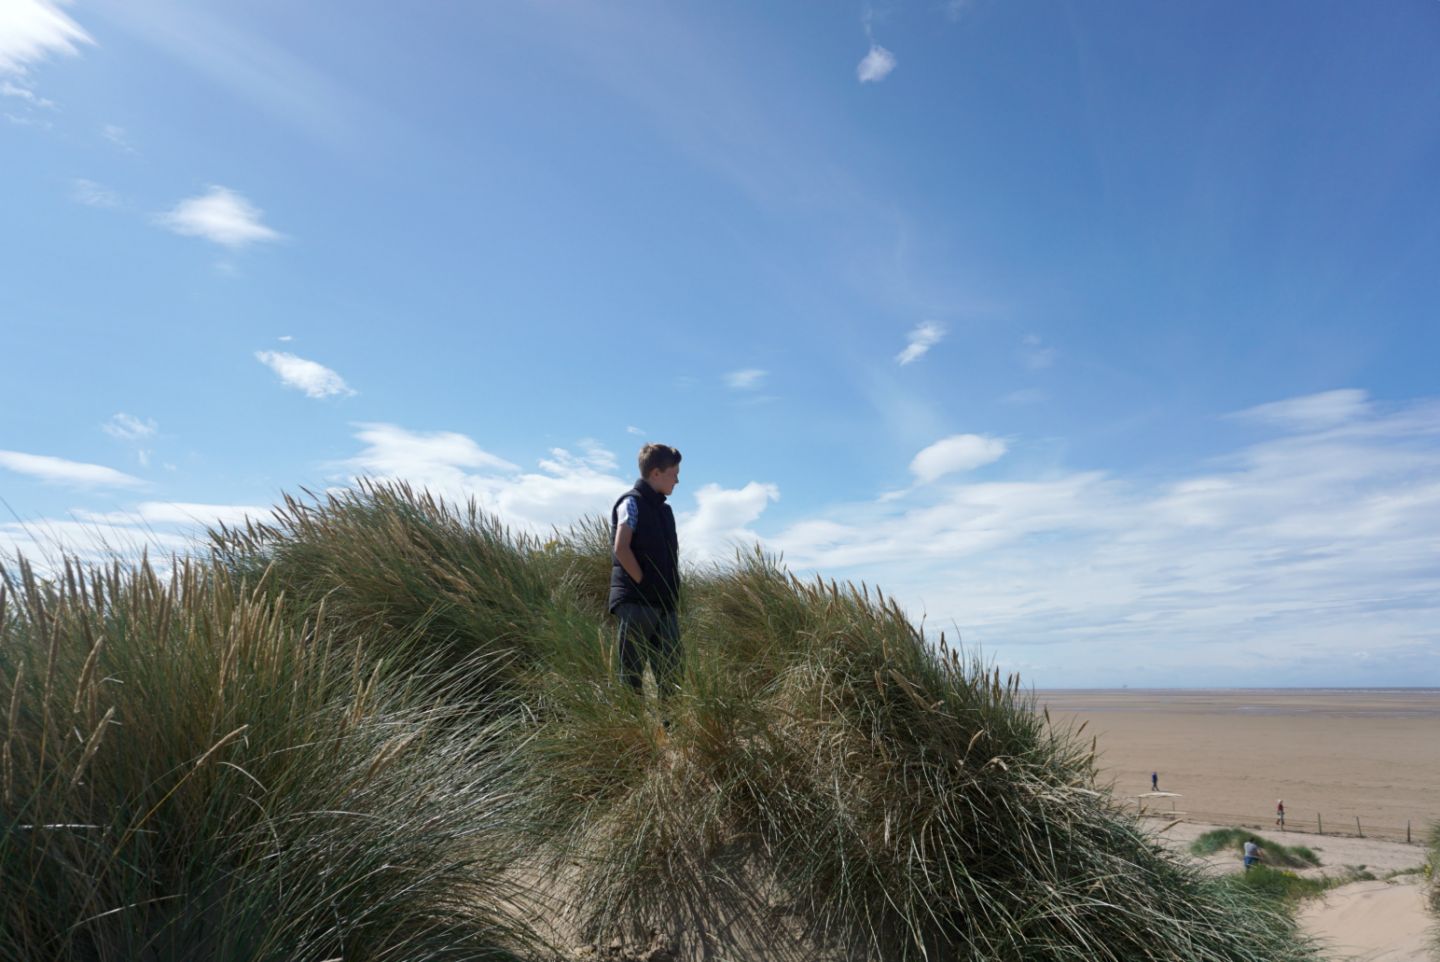 A walk on the Sand Dunes At St Annes www.extraordinarychaos.com